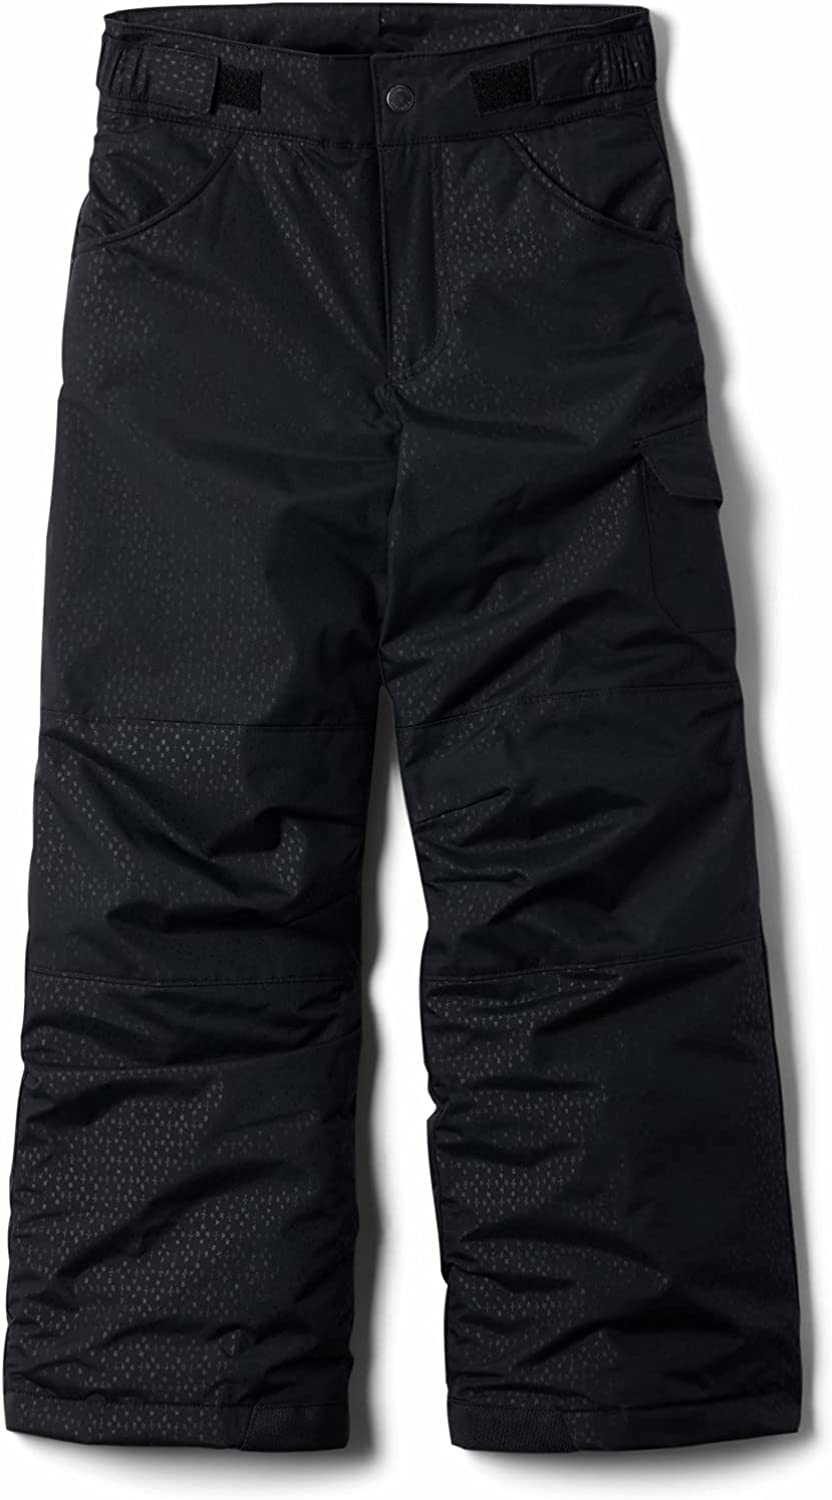 Columbia Girls' Starchaser Pant Inventory cleanup selling sale Ii Discount is also underway Peak